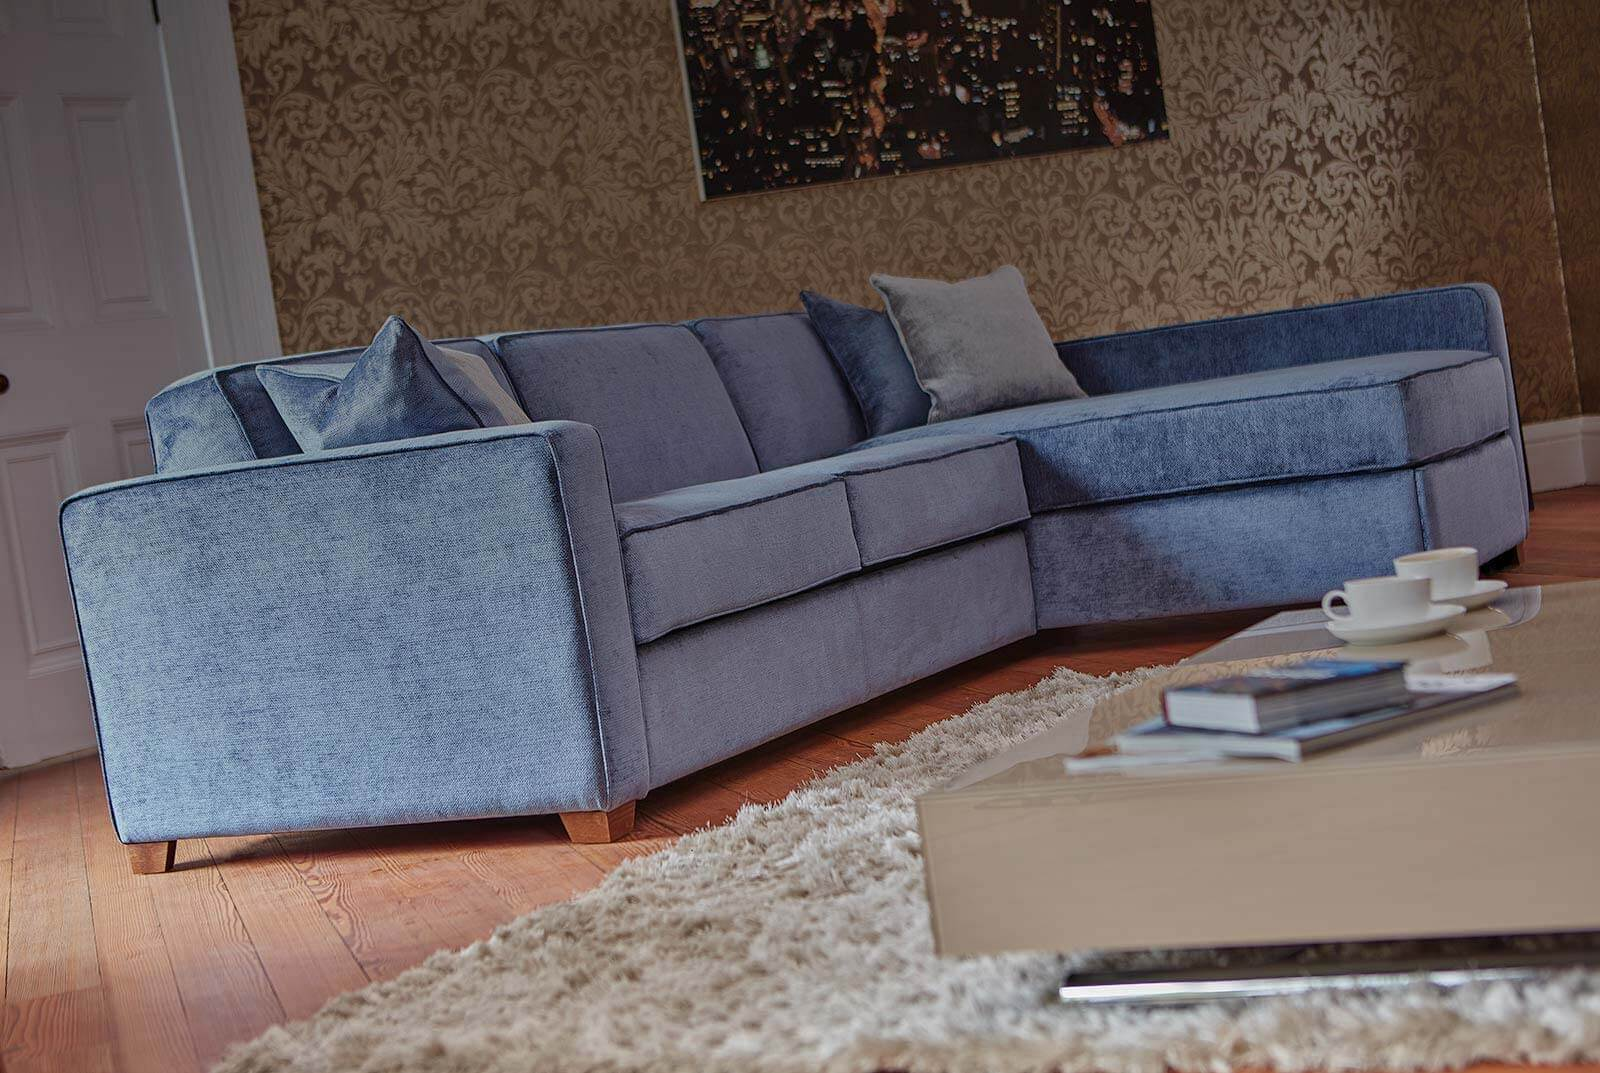 Luxury Sofa Beds For Everyday Use Furl